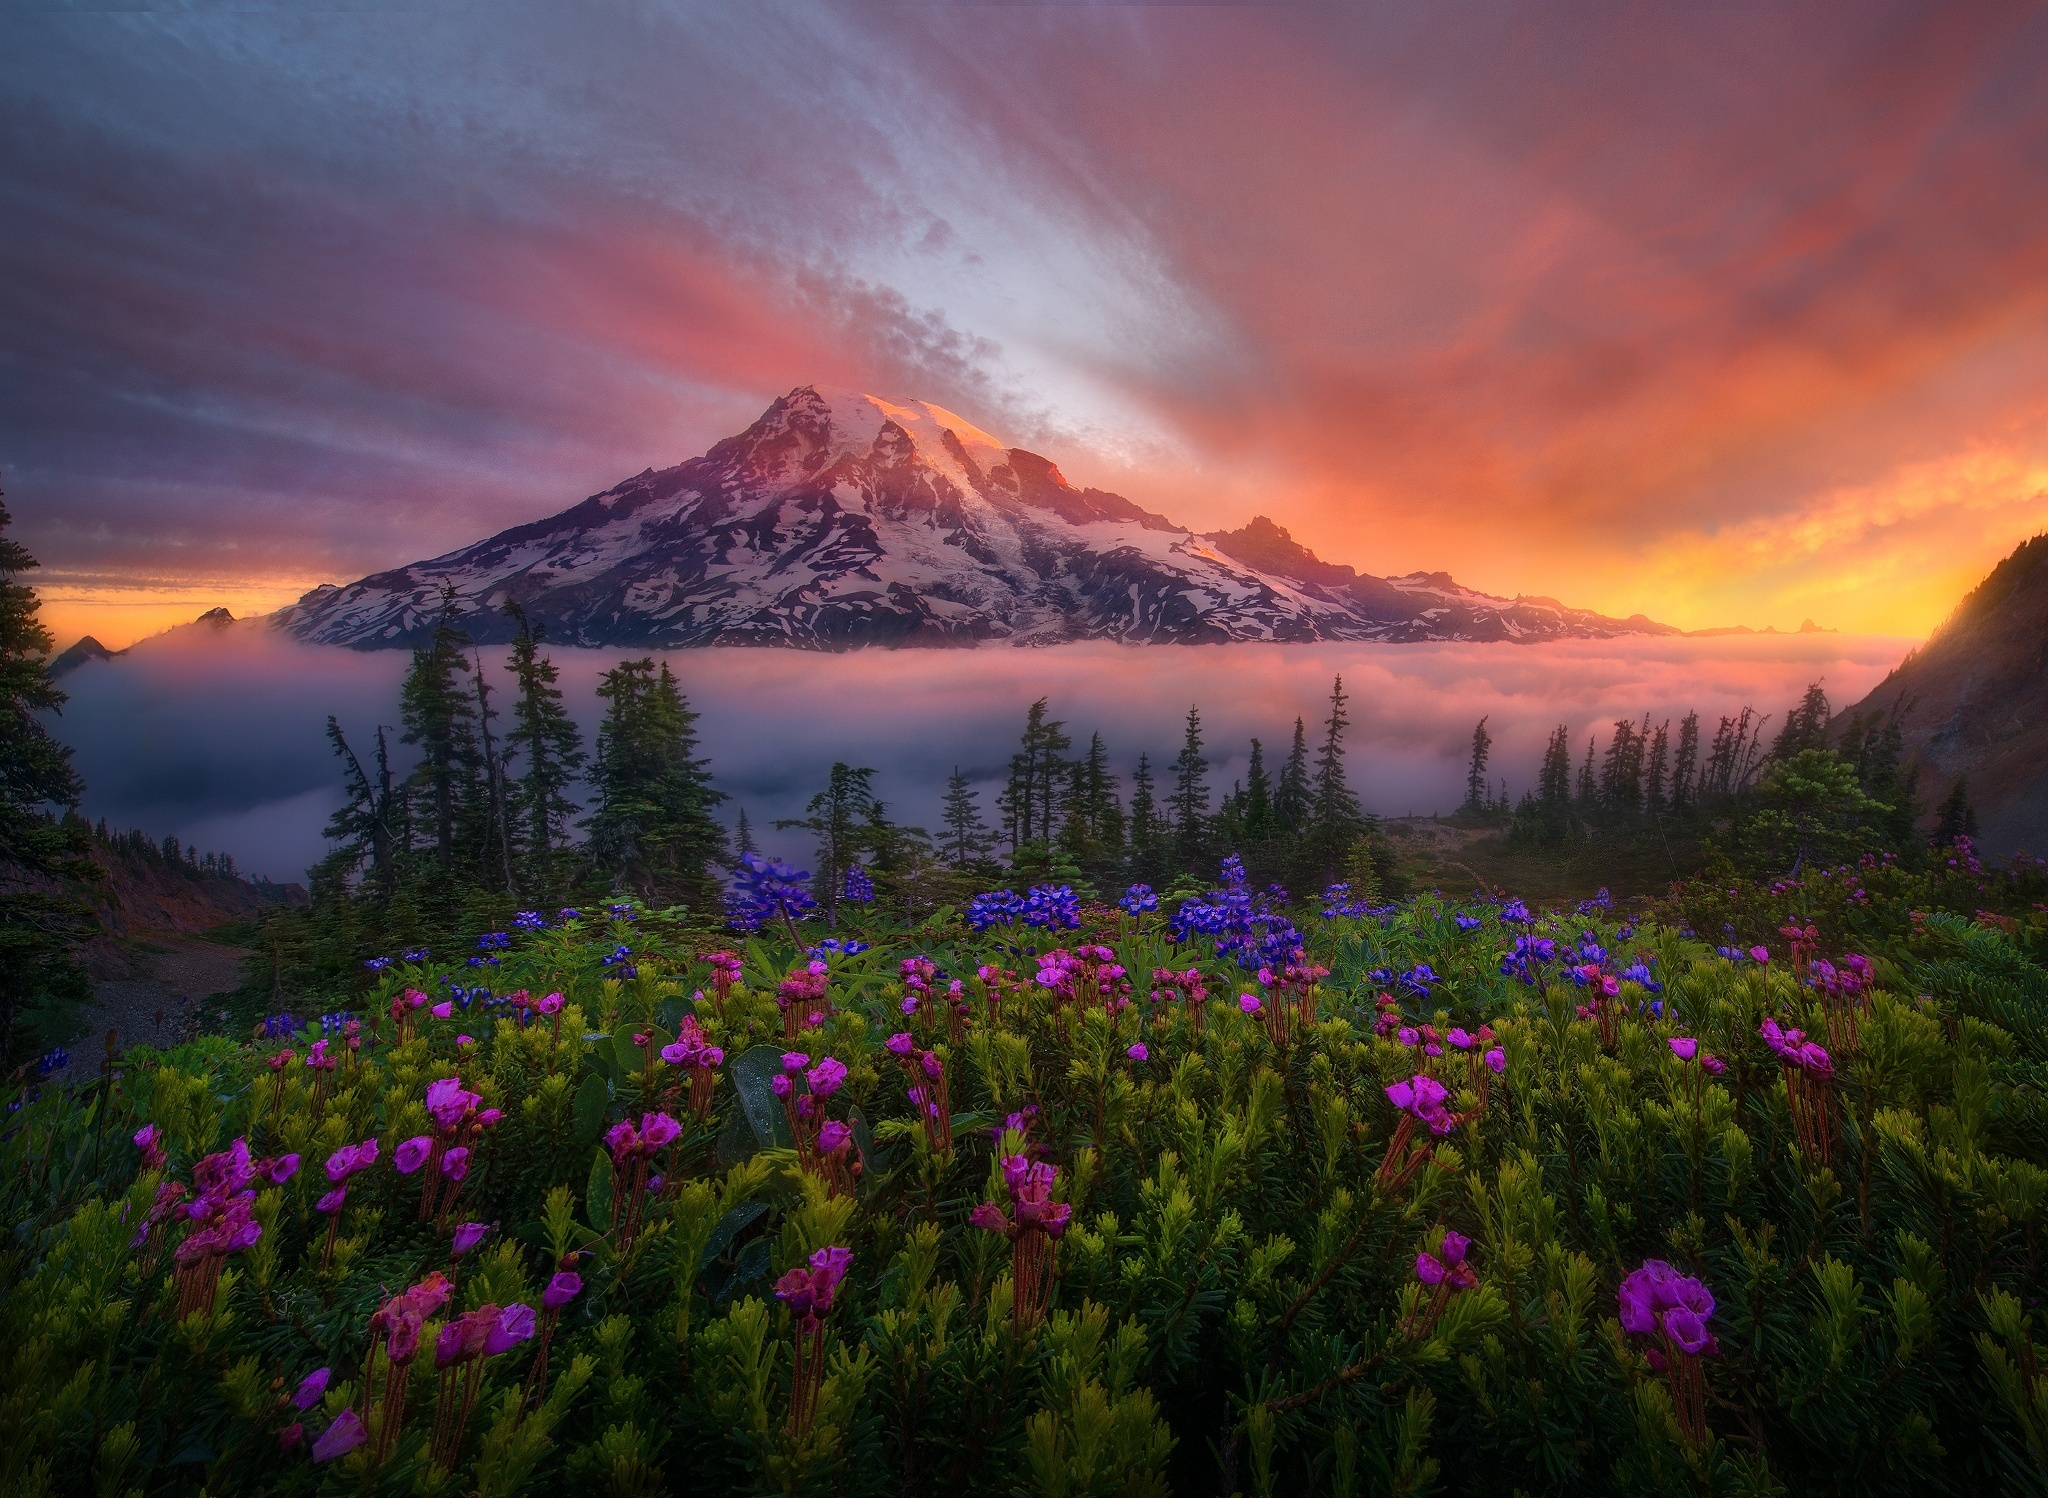 Mount Rainier Wallpapers and Background Images   stmednet 2048x1498